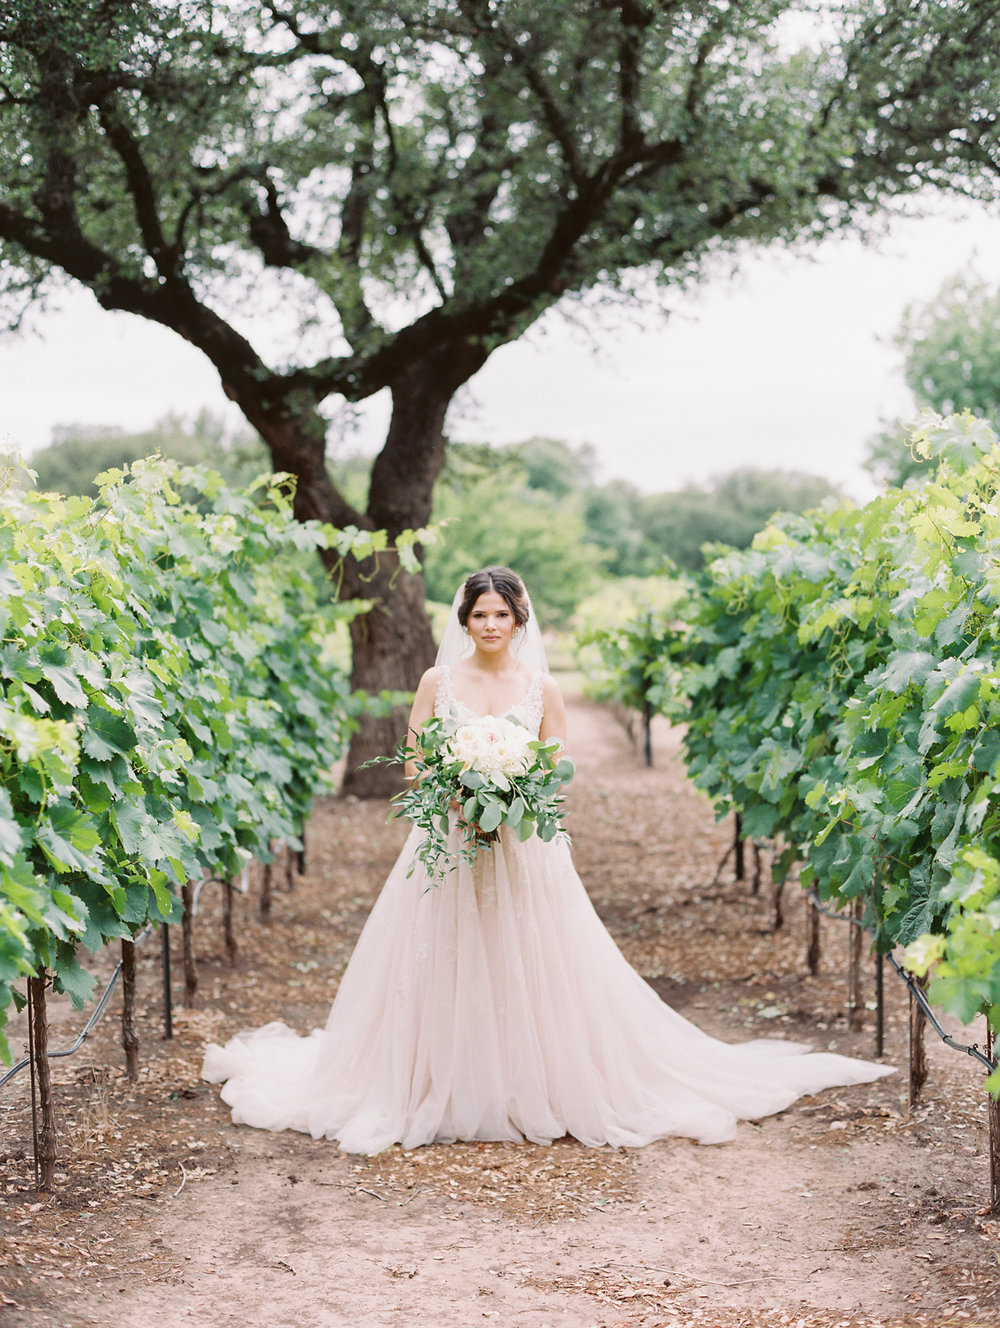 Elegant Spring Vineyard Wedding | Film Wedding Photographer | Austin Wedding Photographer | Bridal Wedding Day Portrait | Britni Dean Photography // britnidean.com